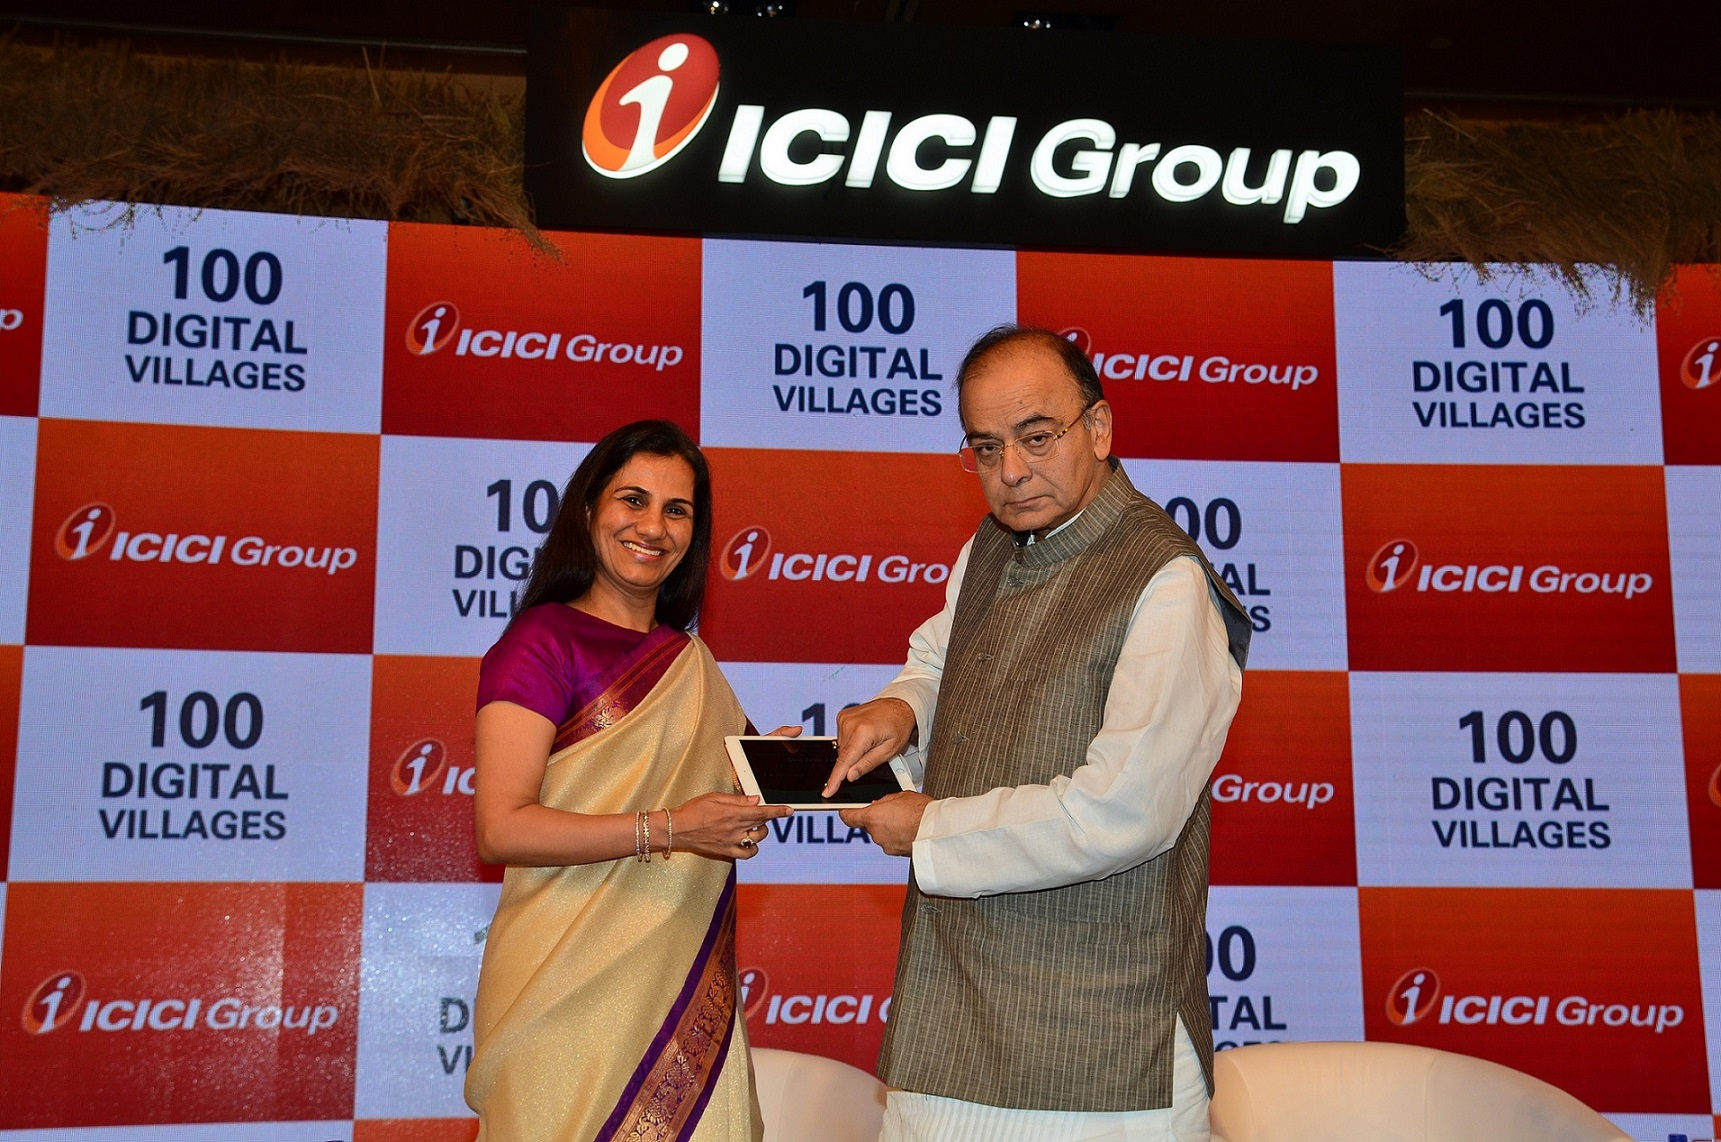 After Jaitley's tweet, CBI officer who signed FIR against Kochhar in ICICI-Videocon case transferred